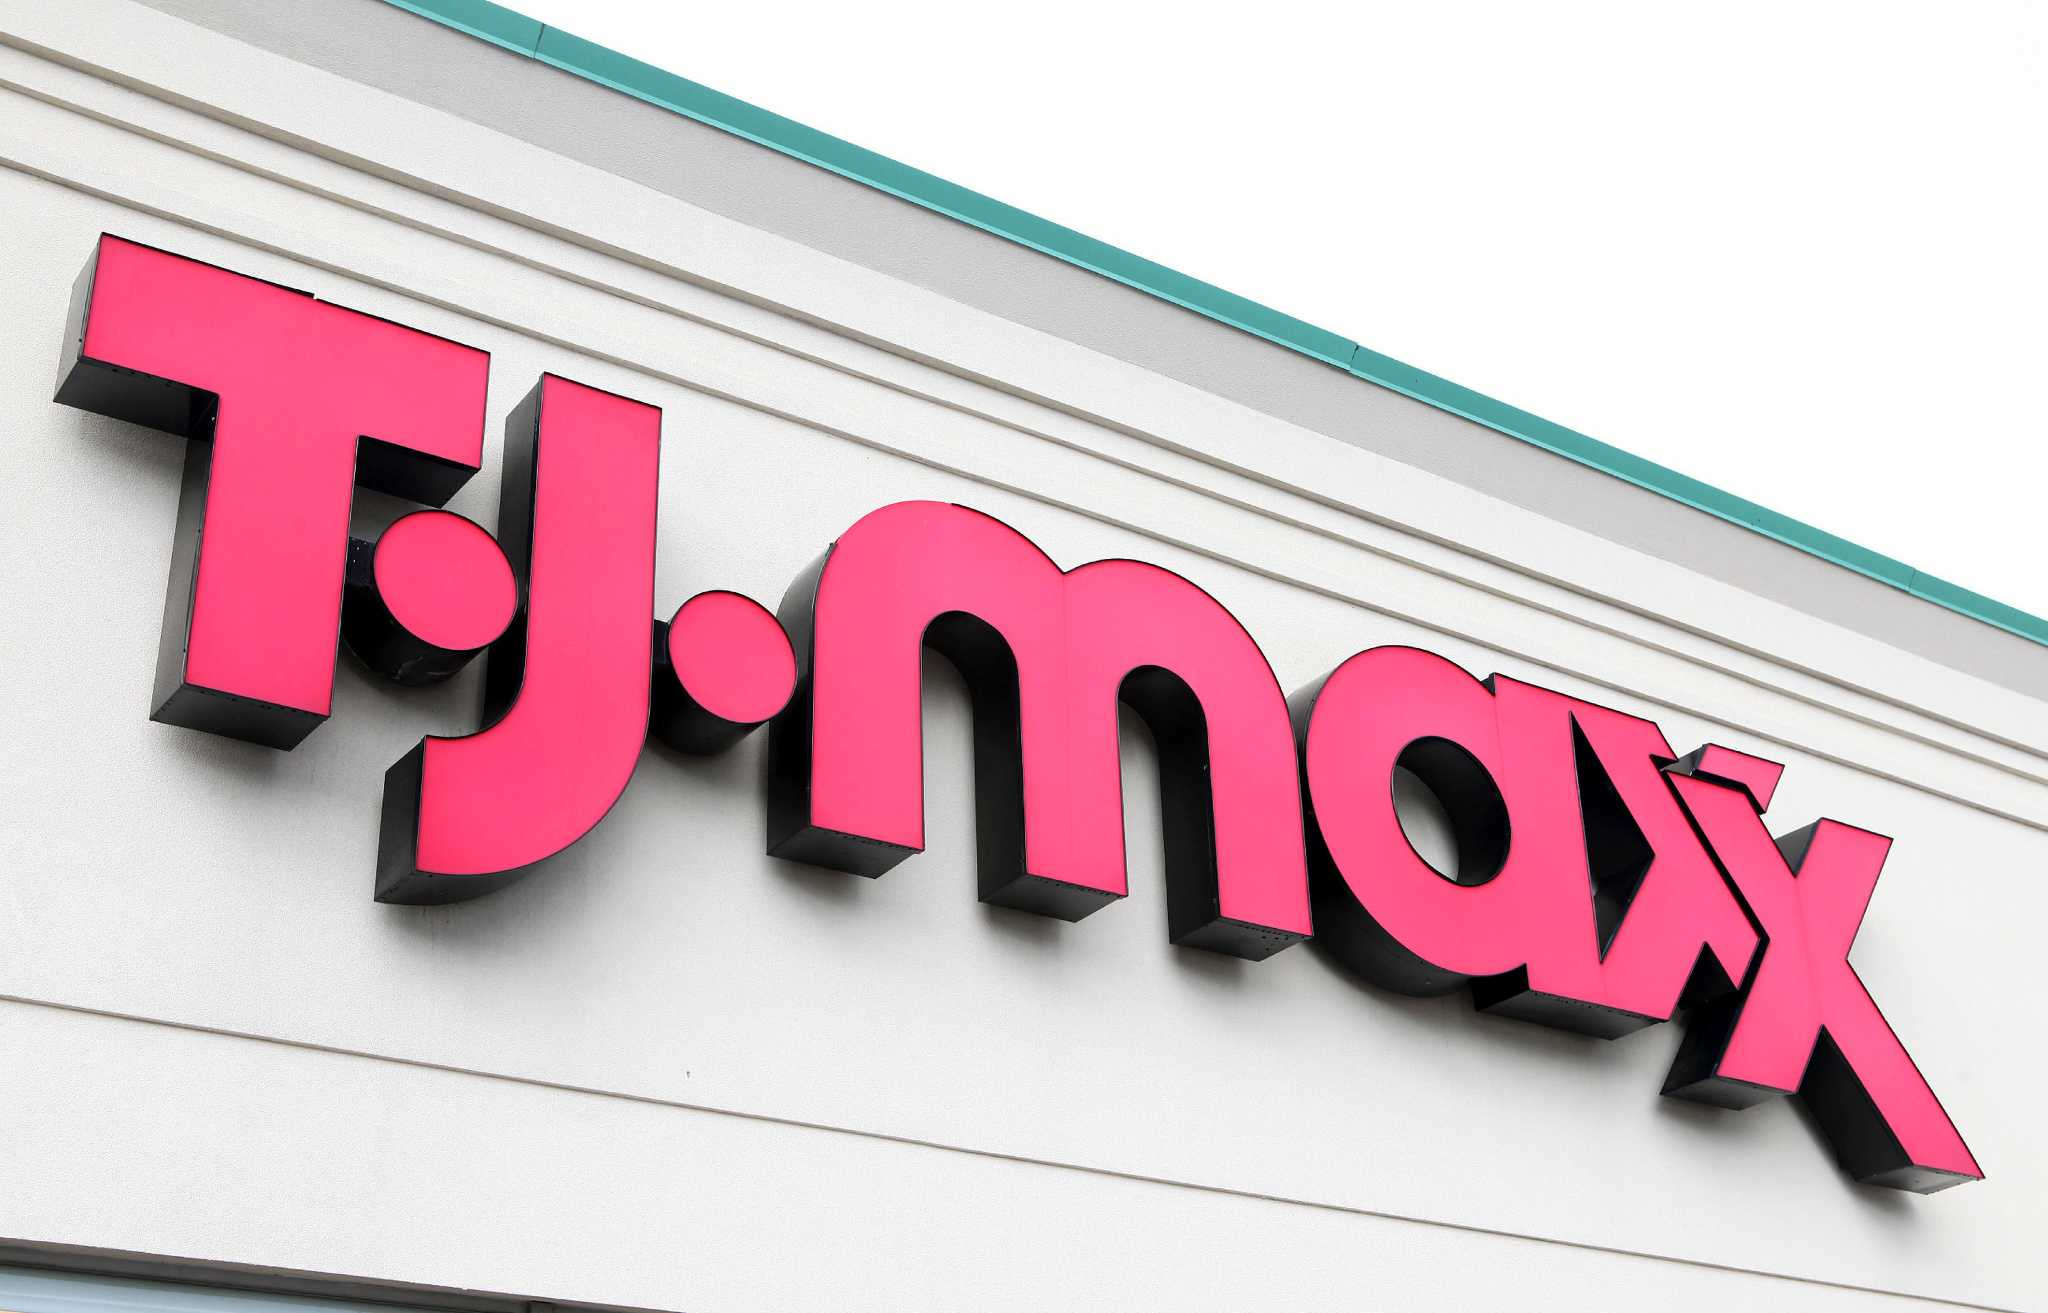 Shoppers bring class action suit against TJ Maxx over  Compare At  prices    Houston Chronicle. Shoppers bring class action suit against TJ Maxx over  Compare At